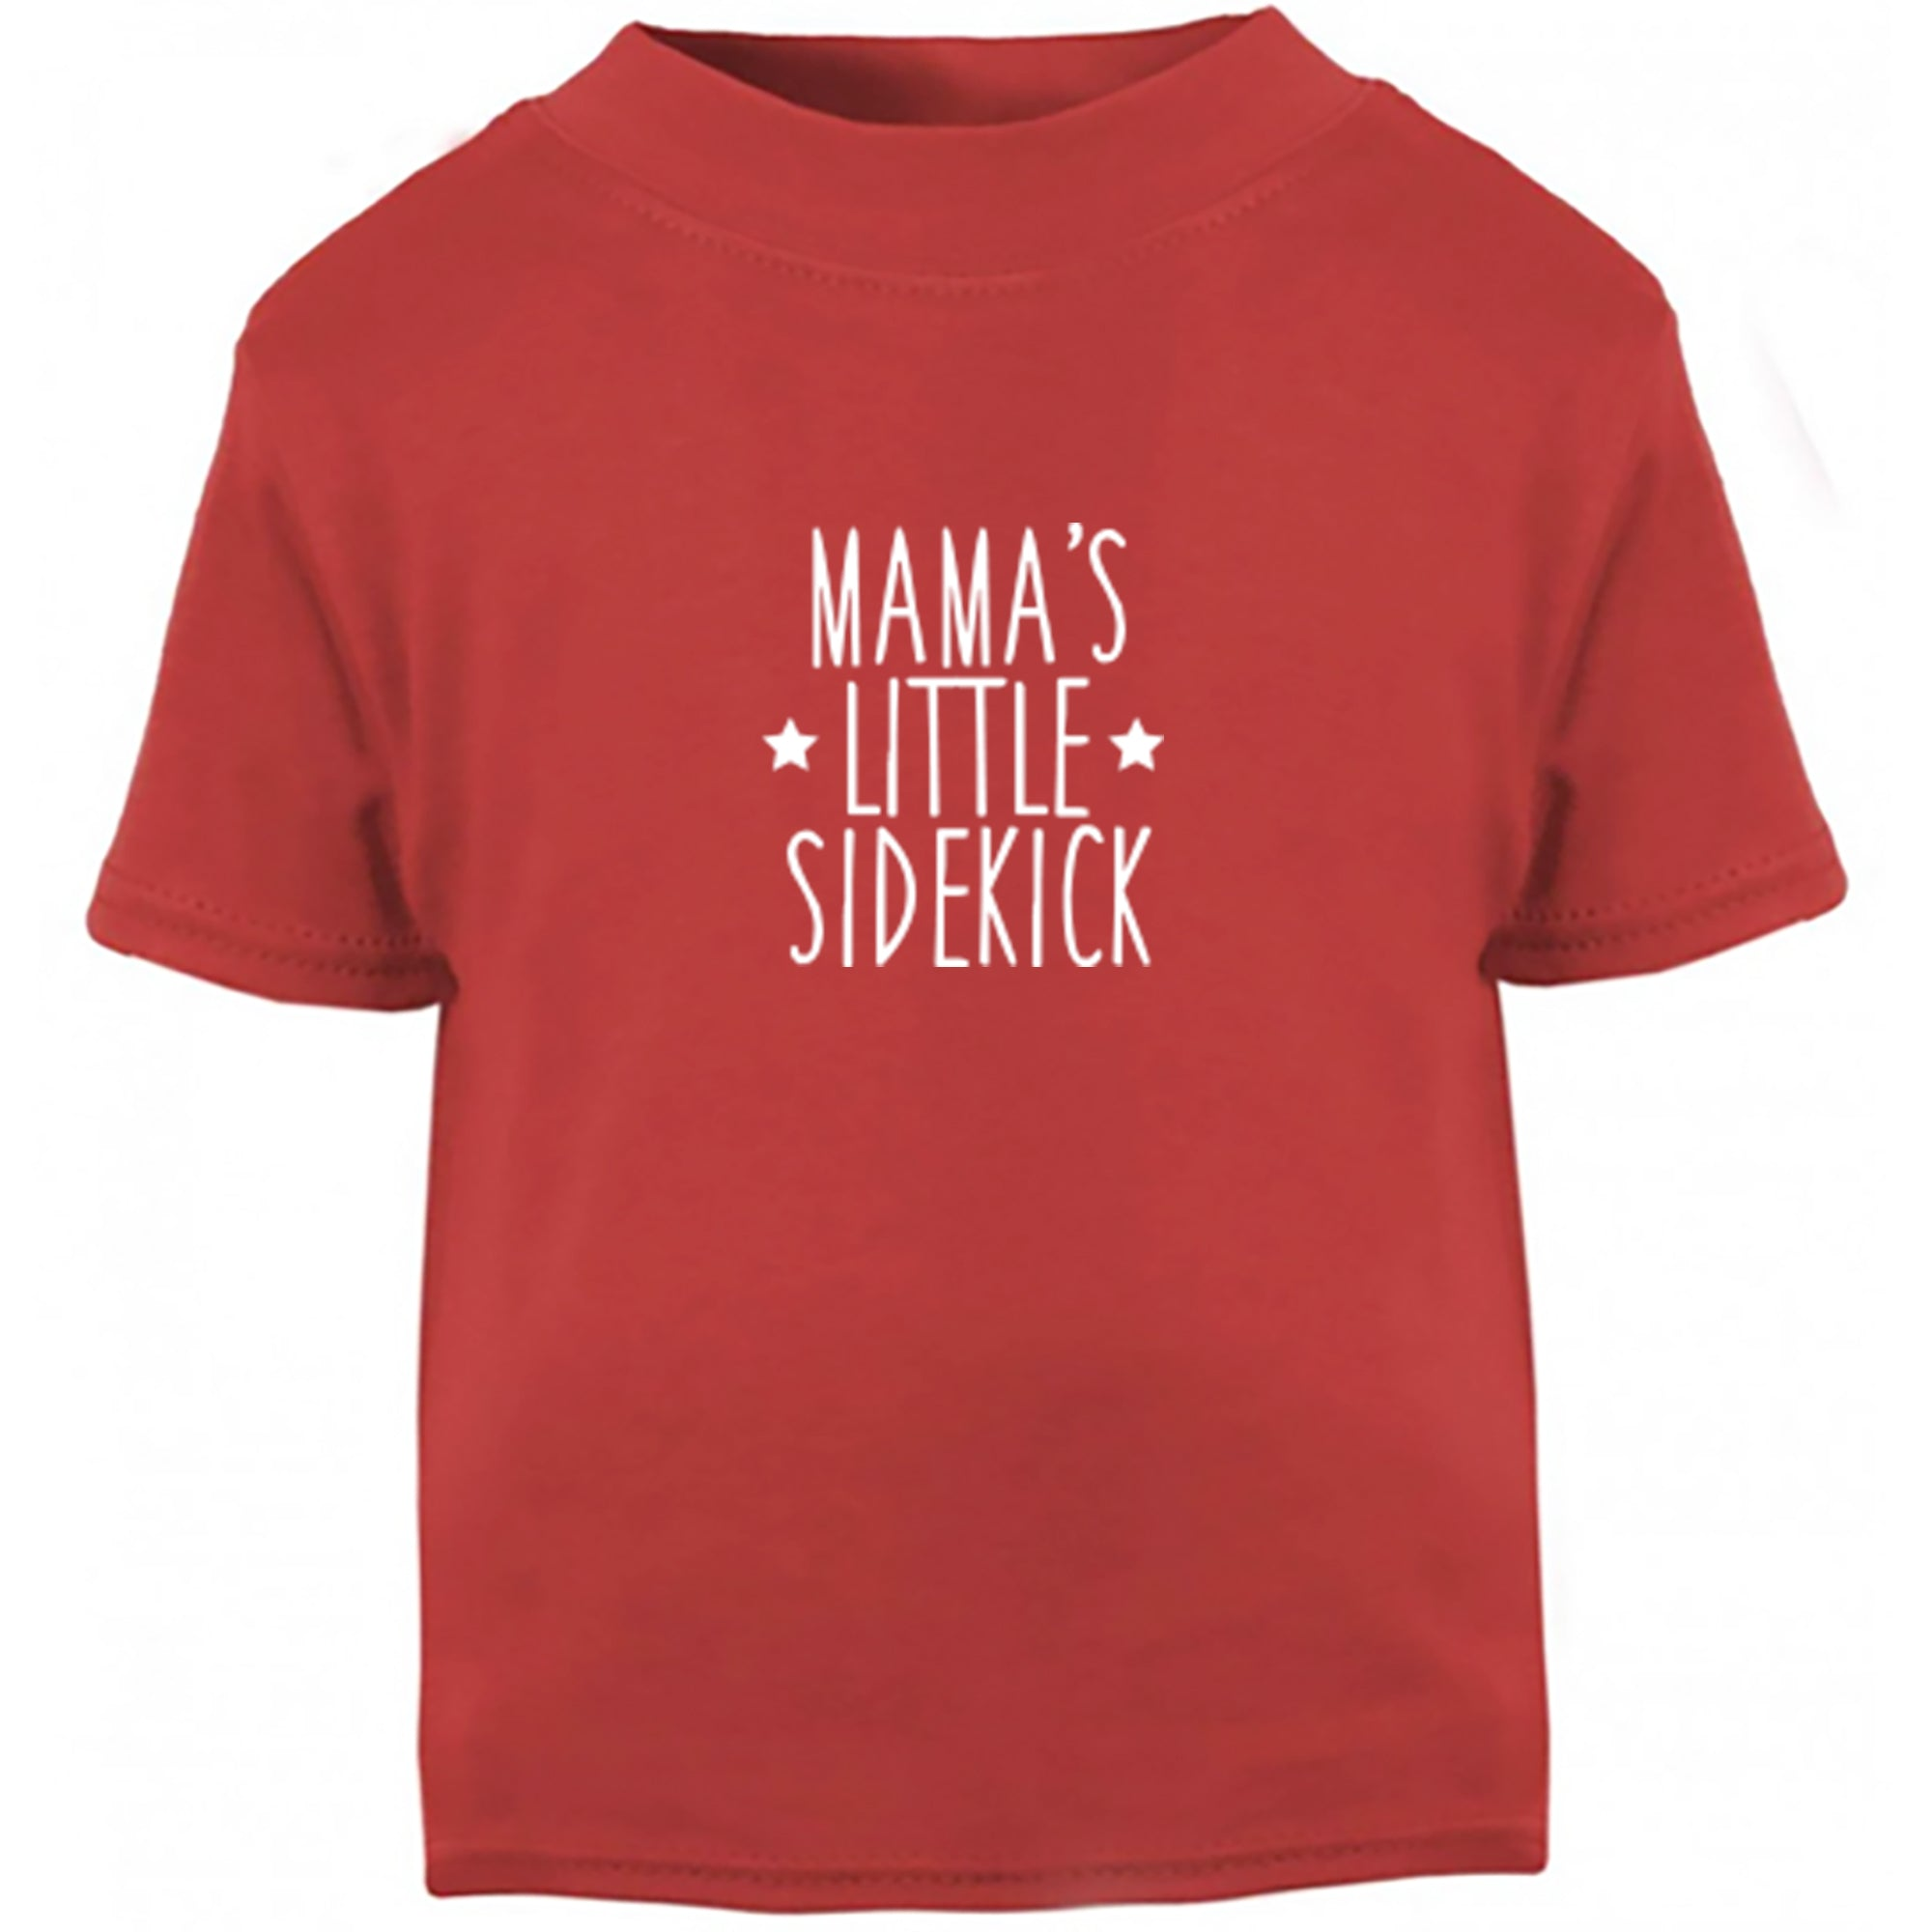 Mama's Little Sidekick Childrens Ages 3/4-12/14 Printed Fit T-Shirt S0902 - Illustrated Identity Ltd.